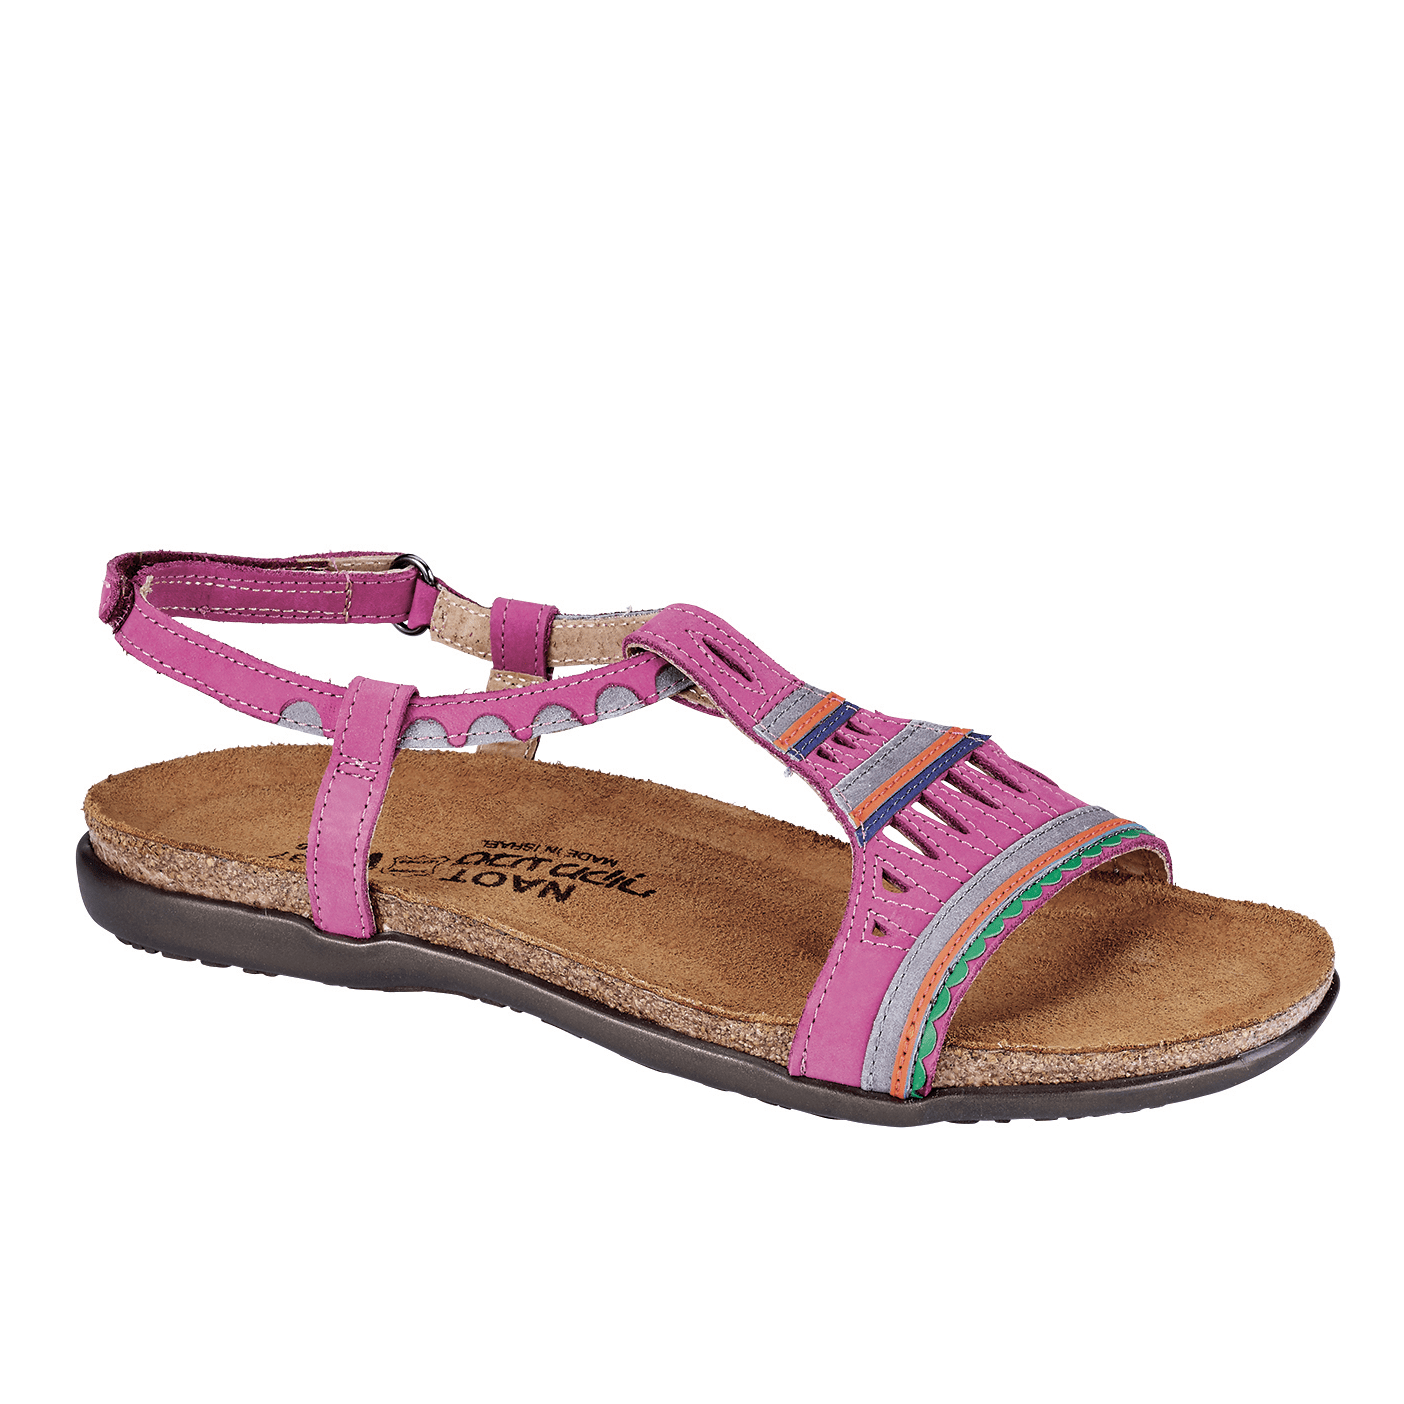 Naot Odelia Women's Leather Printed Sandal Shoe